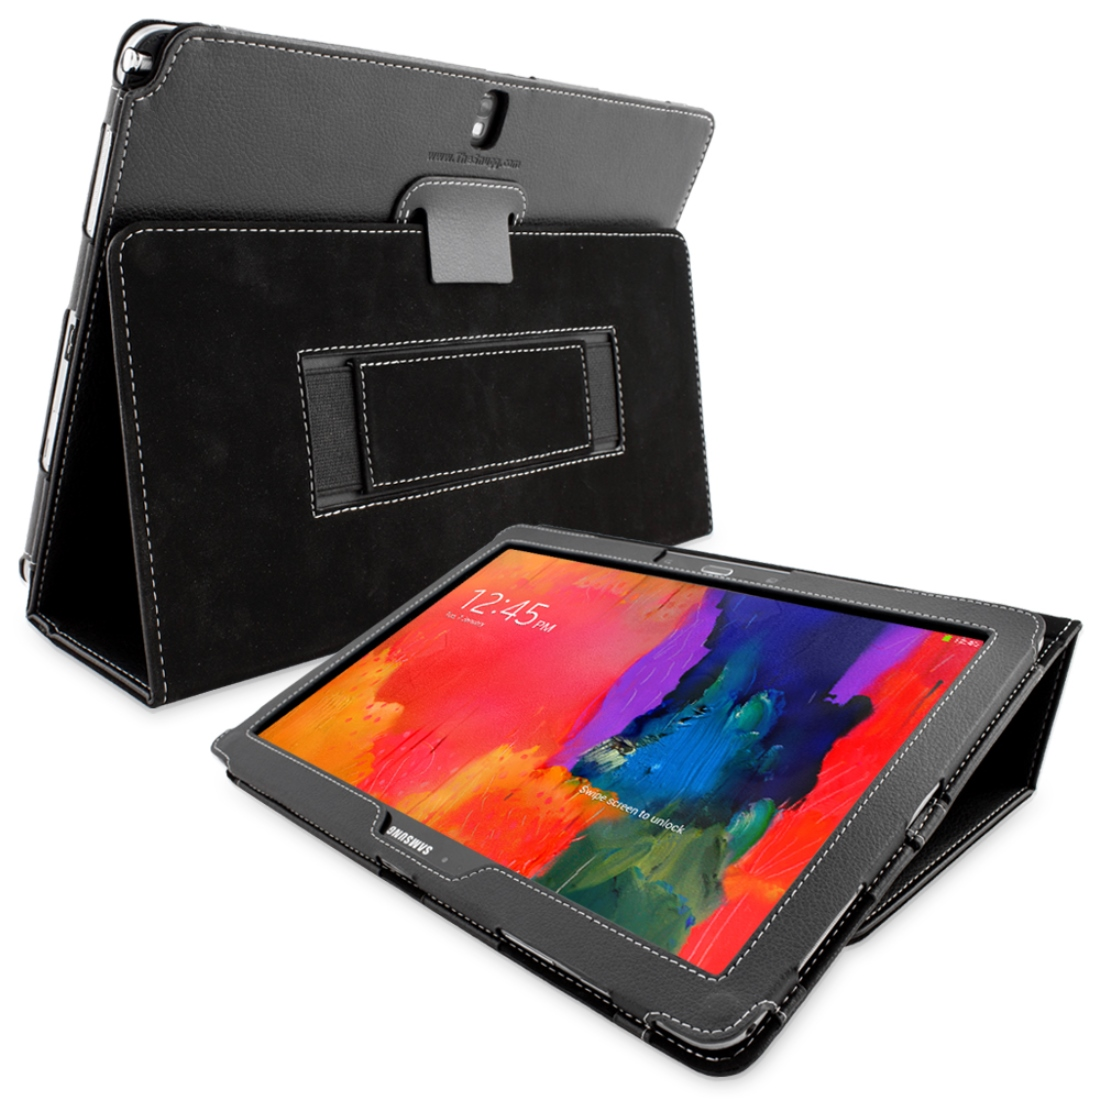 Snugg B00JAH10K8 Galaxy Note PRO 12.2 Case Cover and Flip Stand, Black Leather